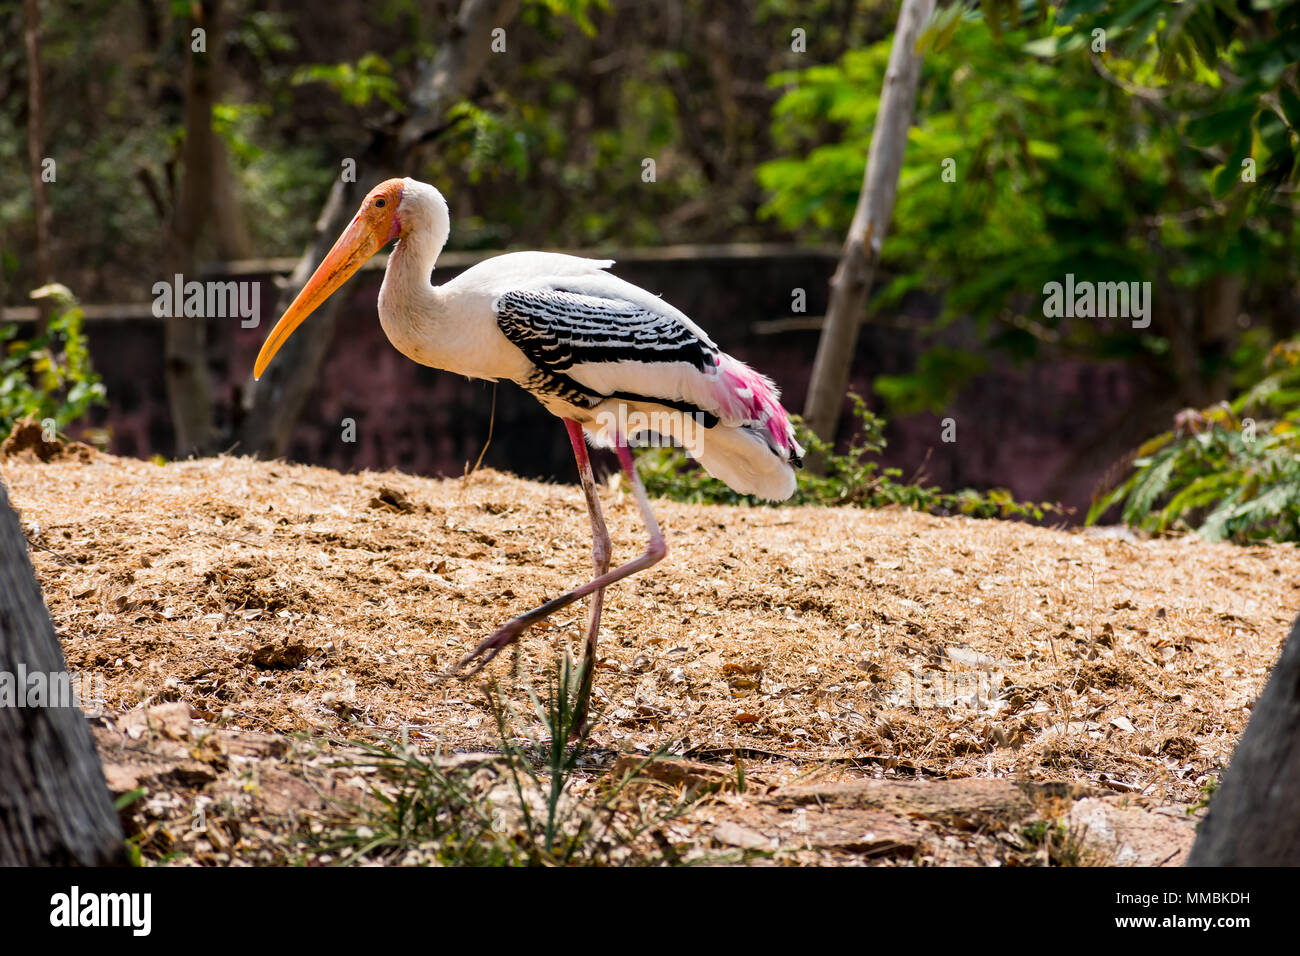 a white painted storks bird walking on zoo close view looking awesome. Stock Photo